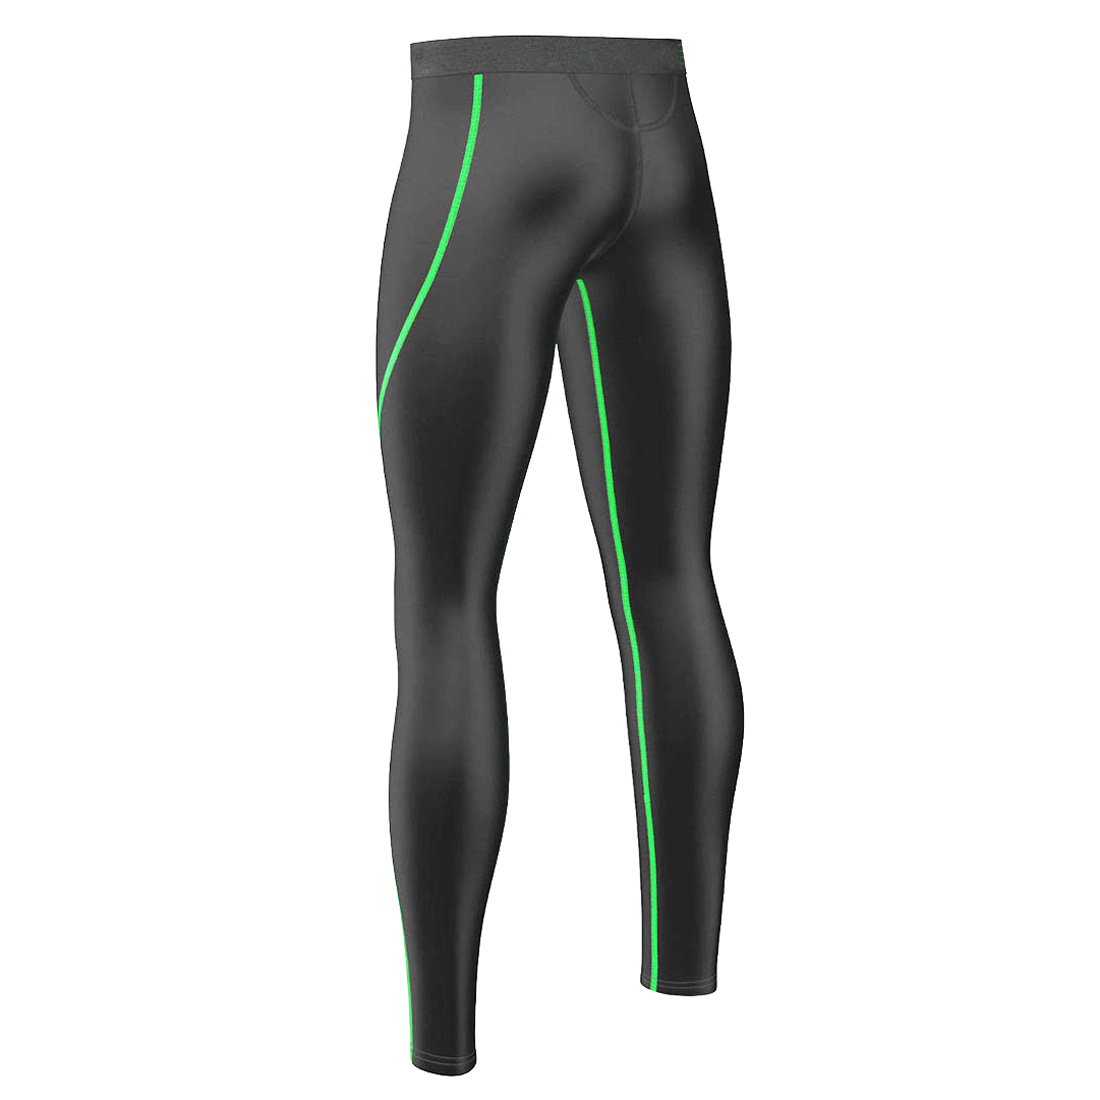 Find great deals on eBay for base layer tights. Shop with confidence.